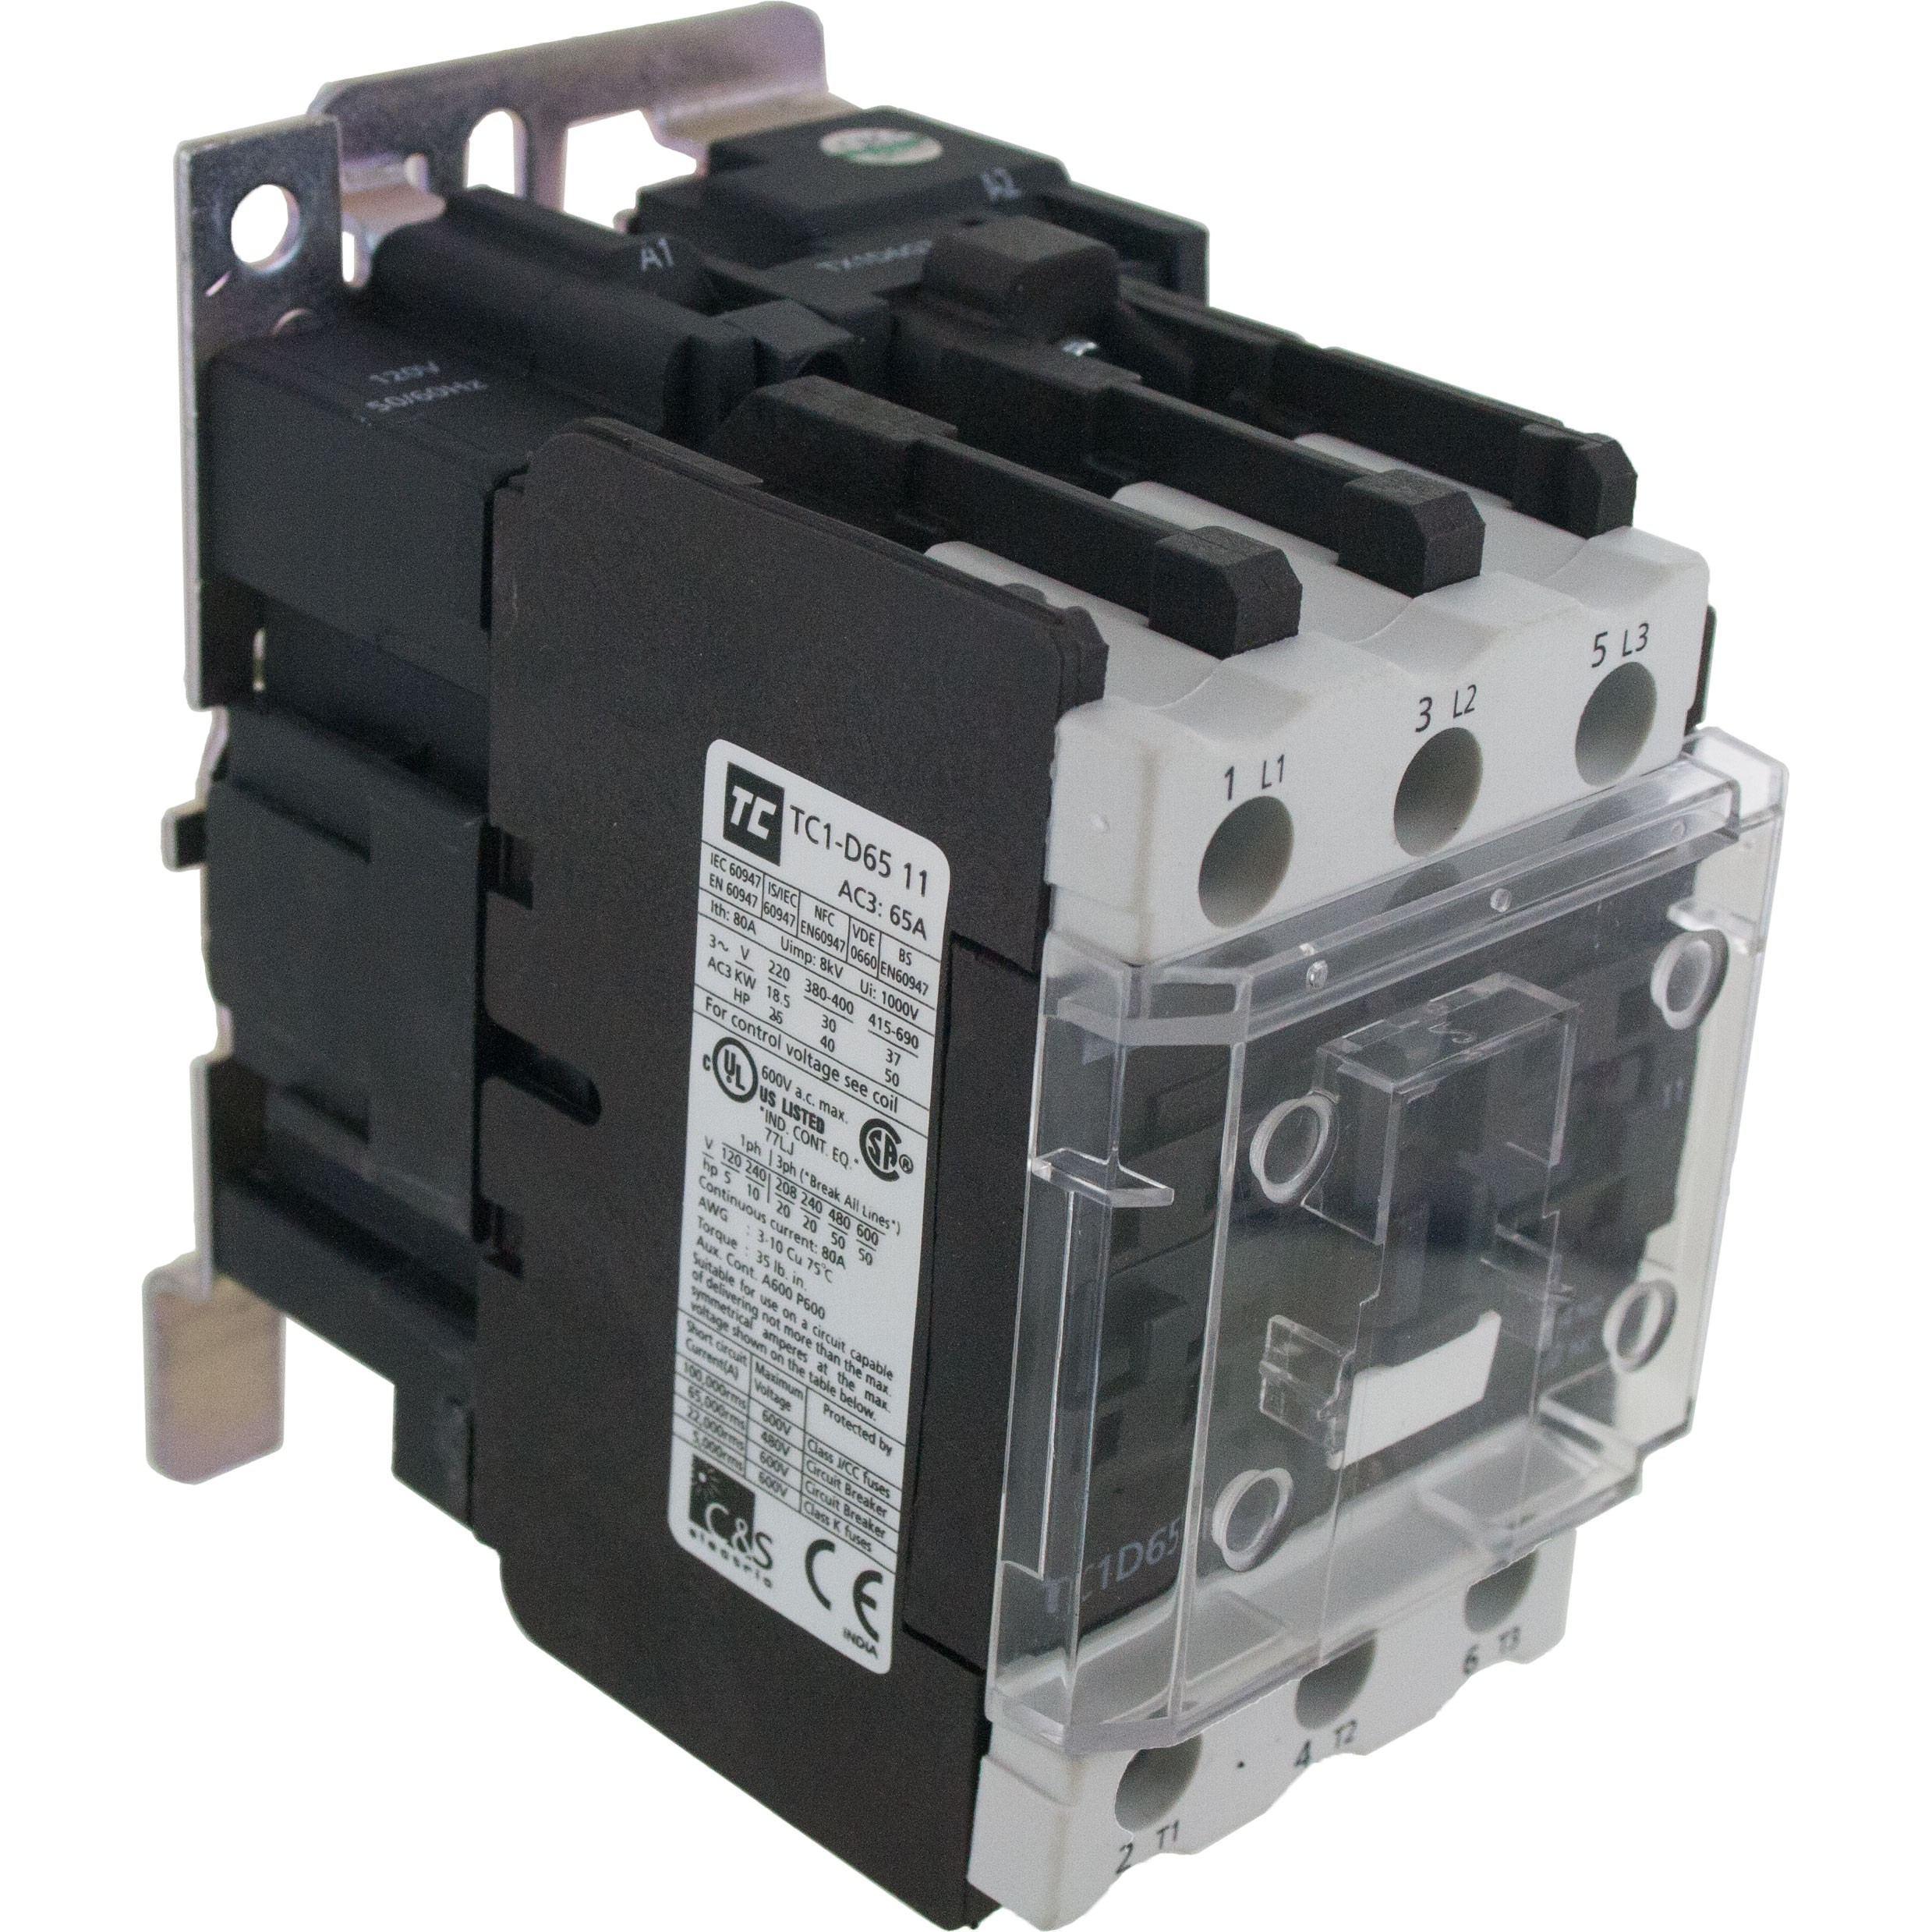 3 Pole Contactor 65 Amp 1 N/O - 1 N/C 575 Volt AC Coil Angle